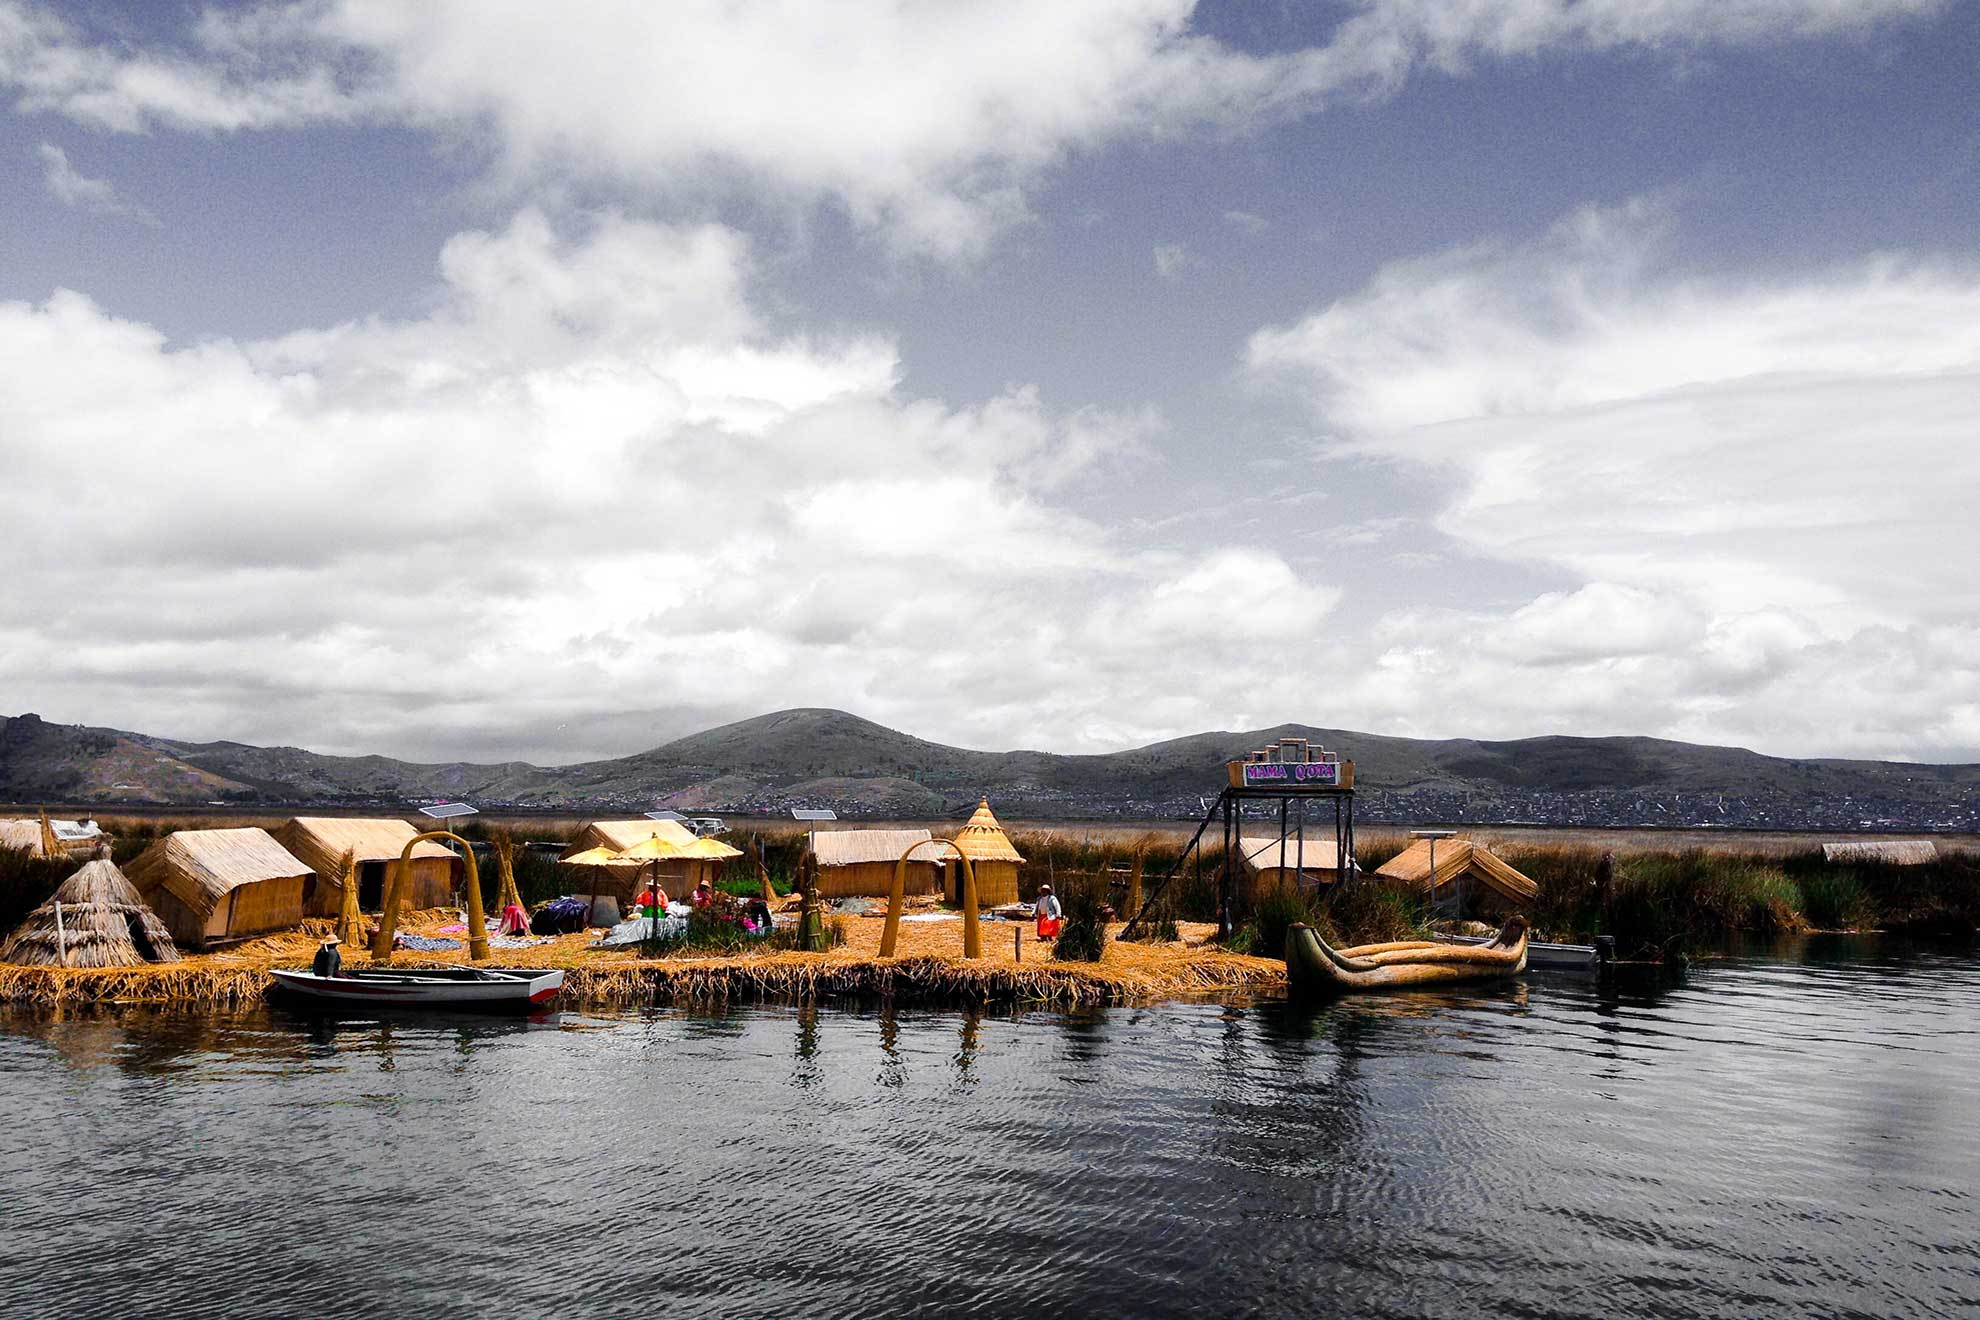 Islas de los Uros in Puno, Peru. Photo by Jerson Joseph Goicochea Romero on Unsplash